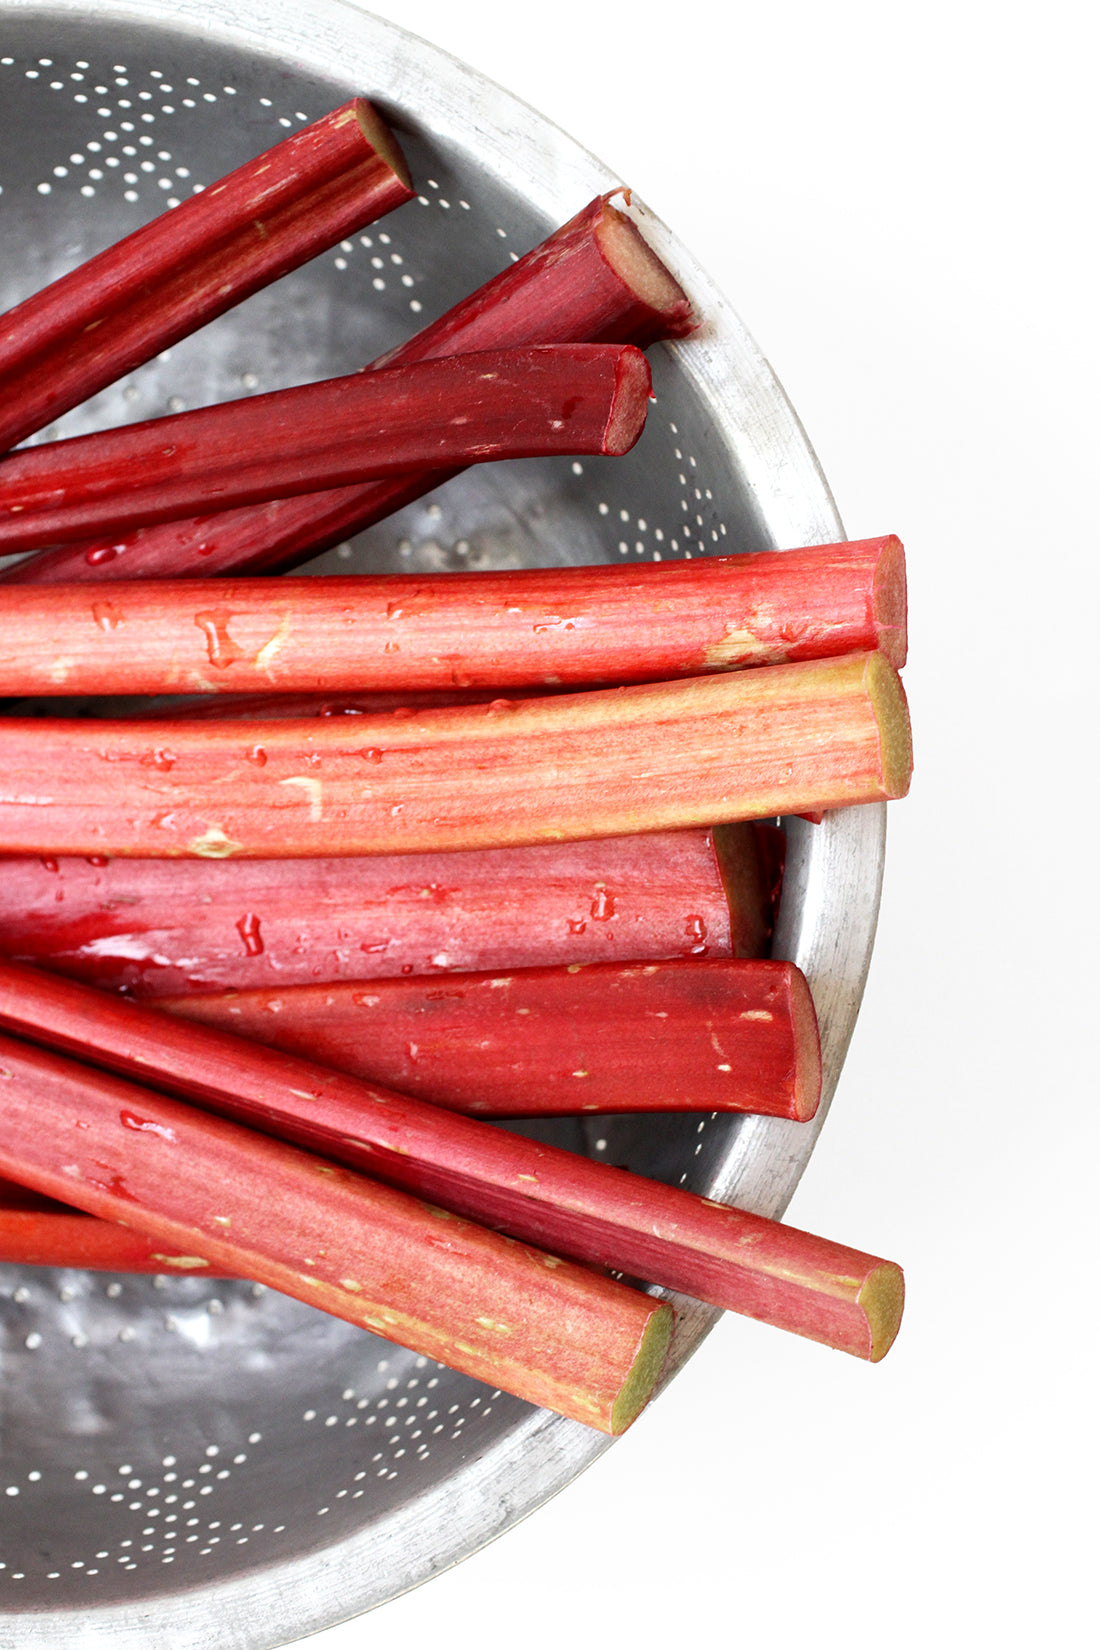 Image from above of part of a strainer full of rhubarb for Miss Jones Baking Co Summer Strawberry + Rhubarb Tart recipe